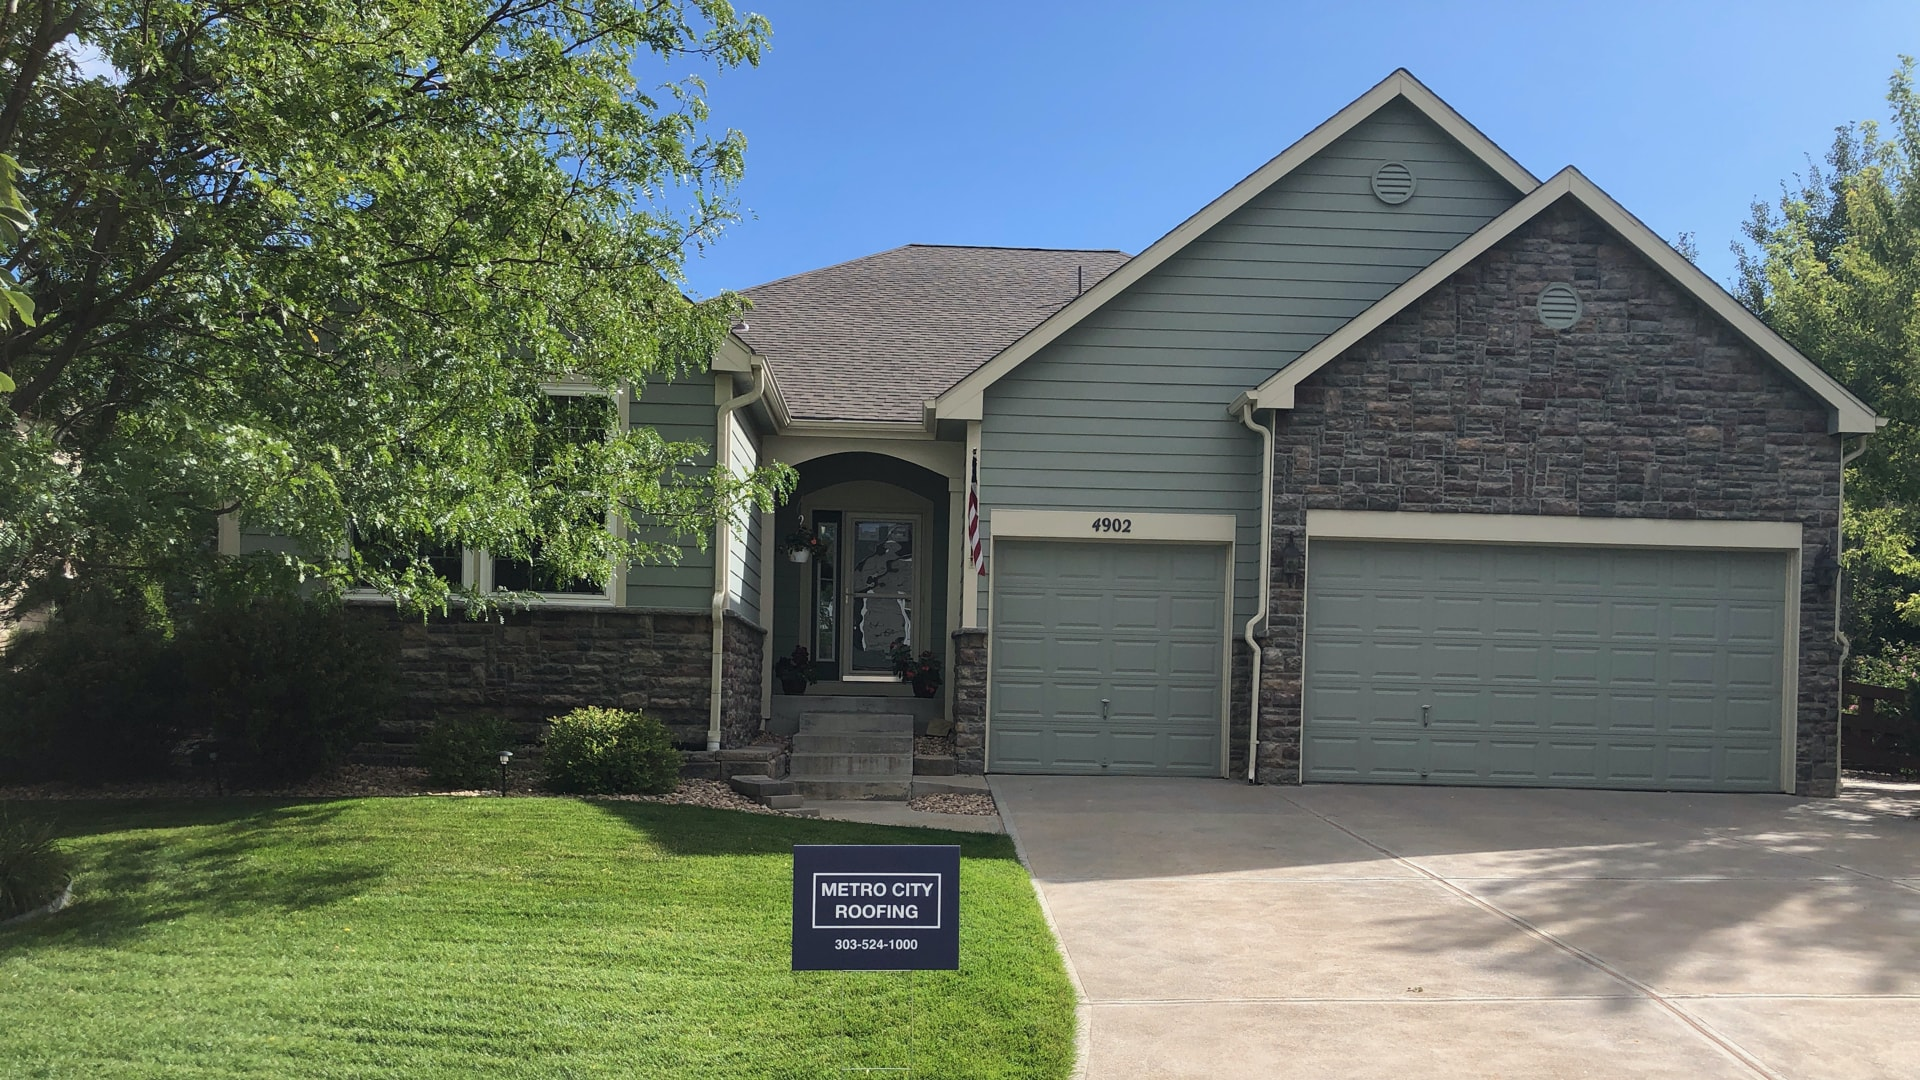 Green, ranch style home with stone accents in Broomfield, Colorado with blue Metro City Roofing sign in the foreground